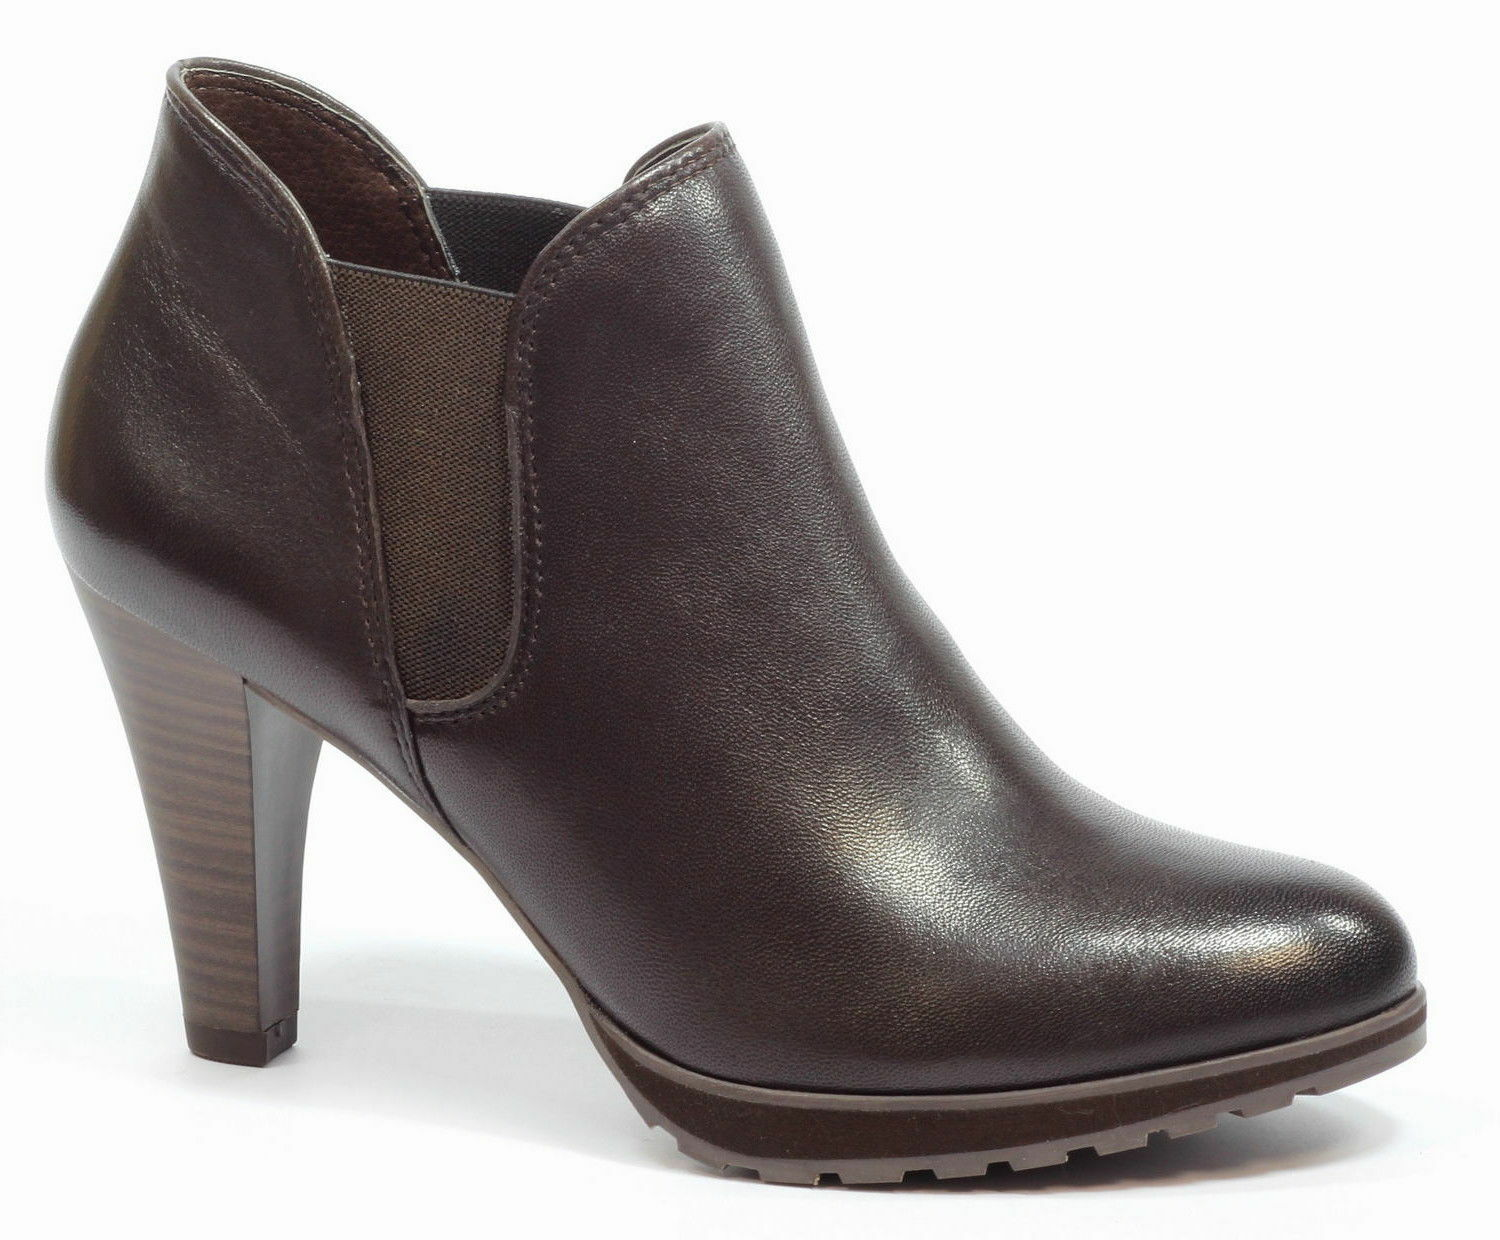 Redfoot - Ladies Scoop Gusset Brown Leather Ankle Boots Size UK 6 -